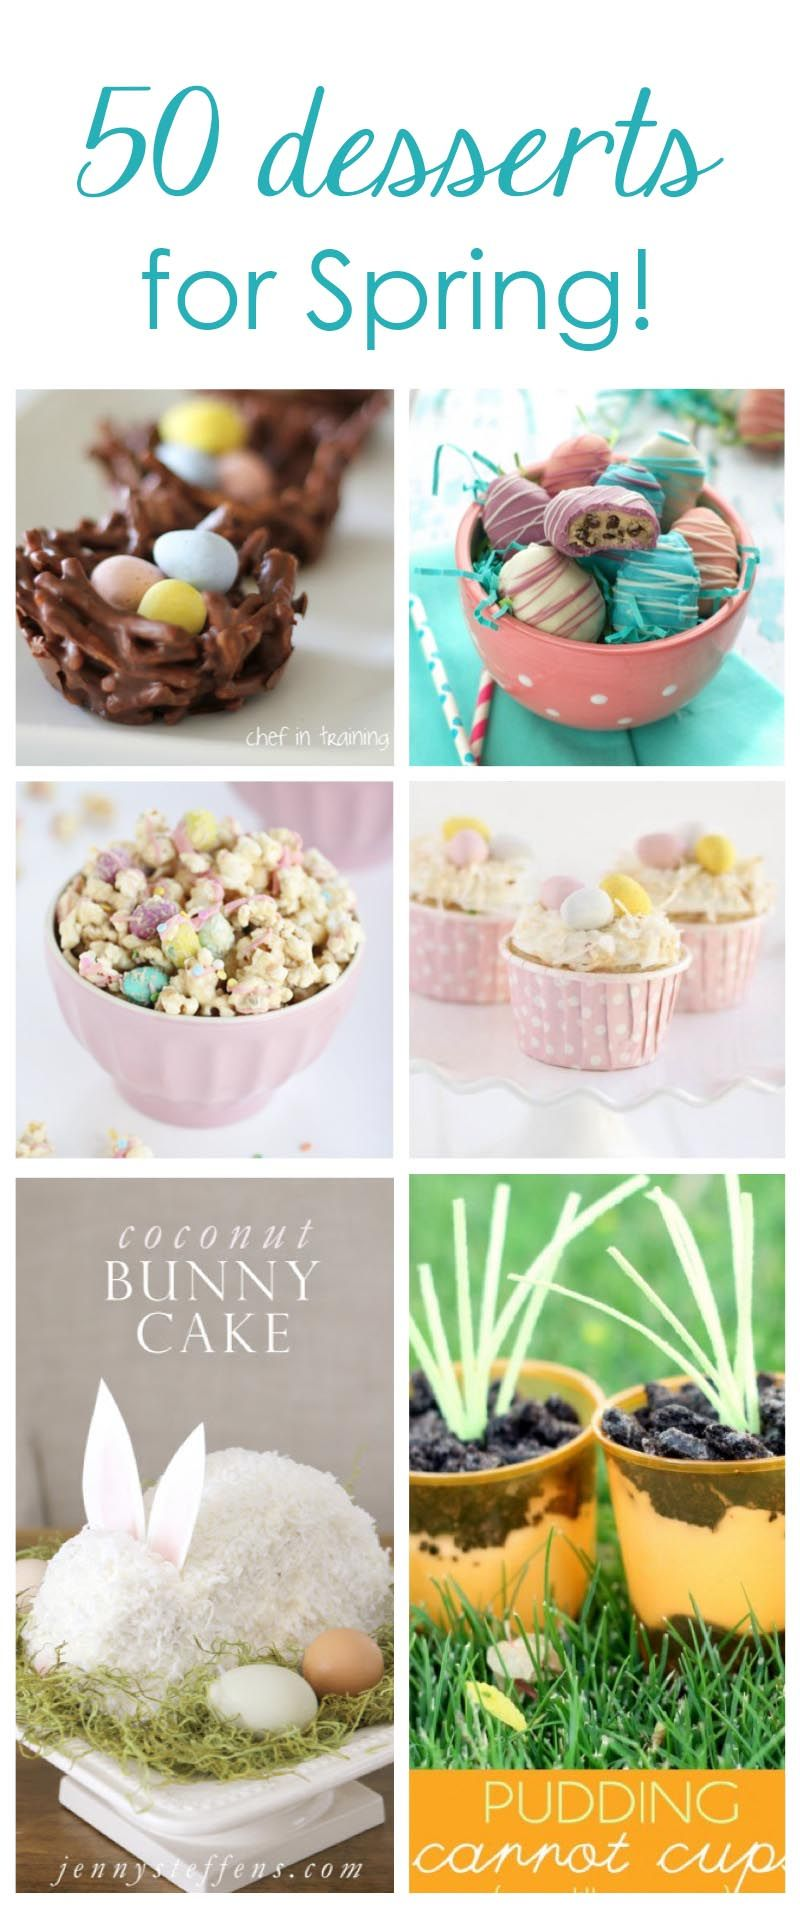 Top 50 Easter Desserts I Heart Nap Time | I Heart Nap Time - Easy recipes, DIY crafts, Homemaking